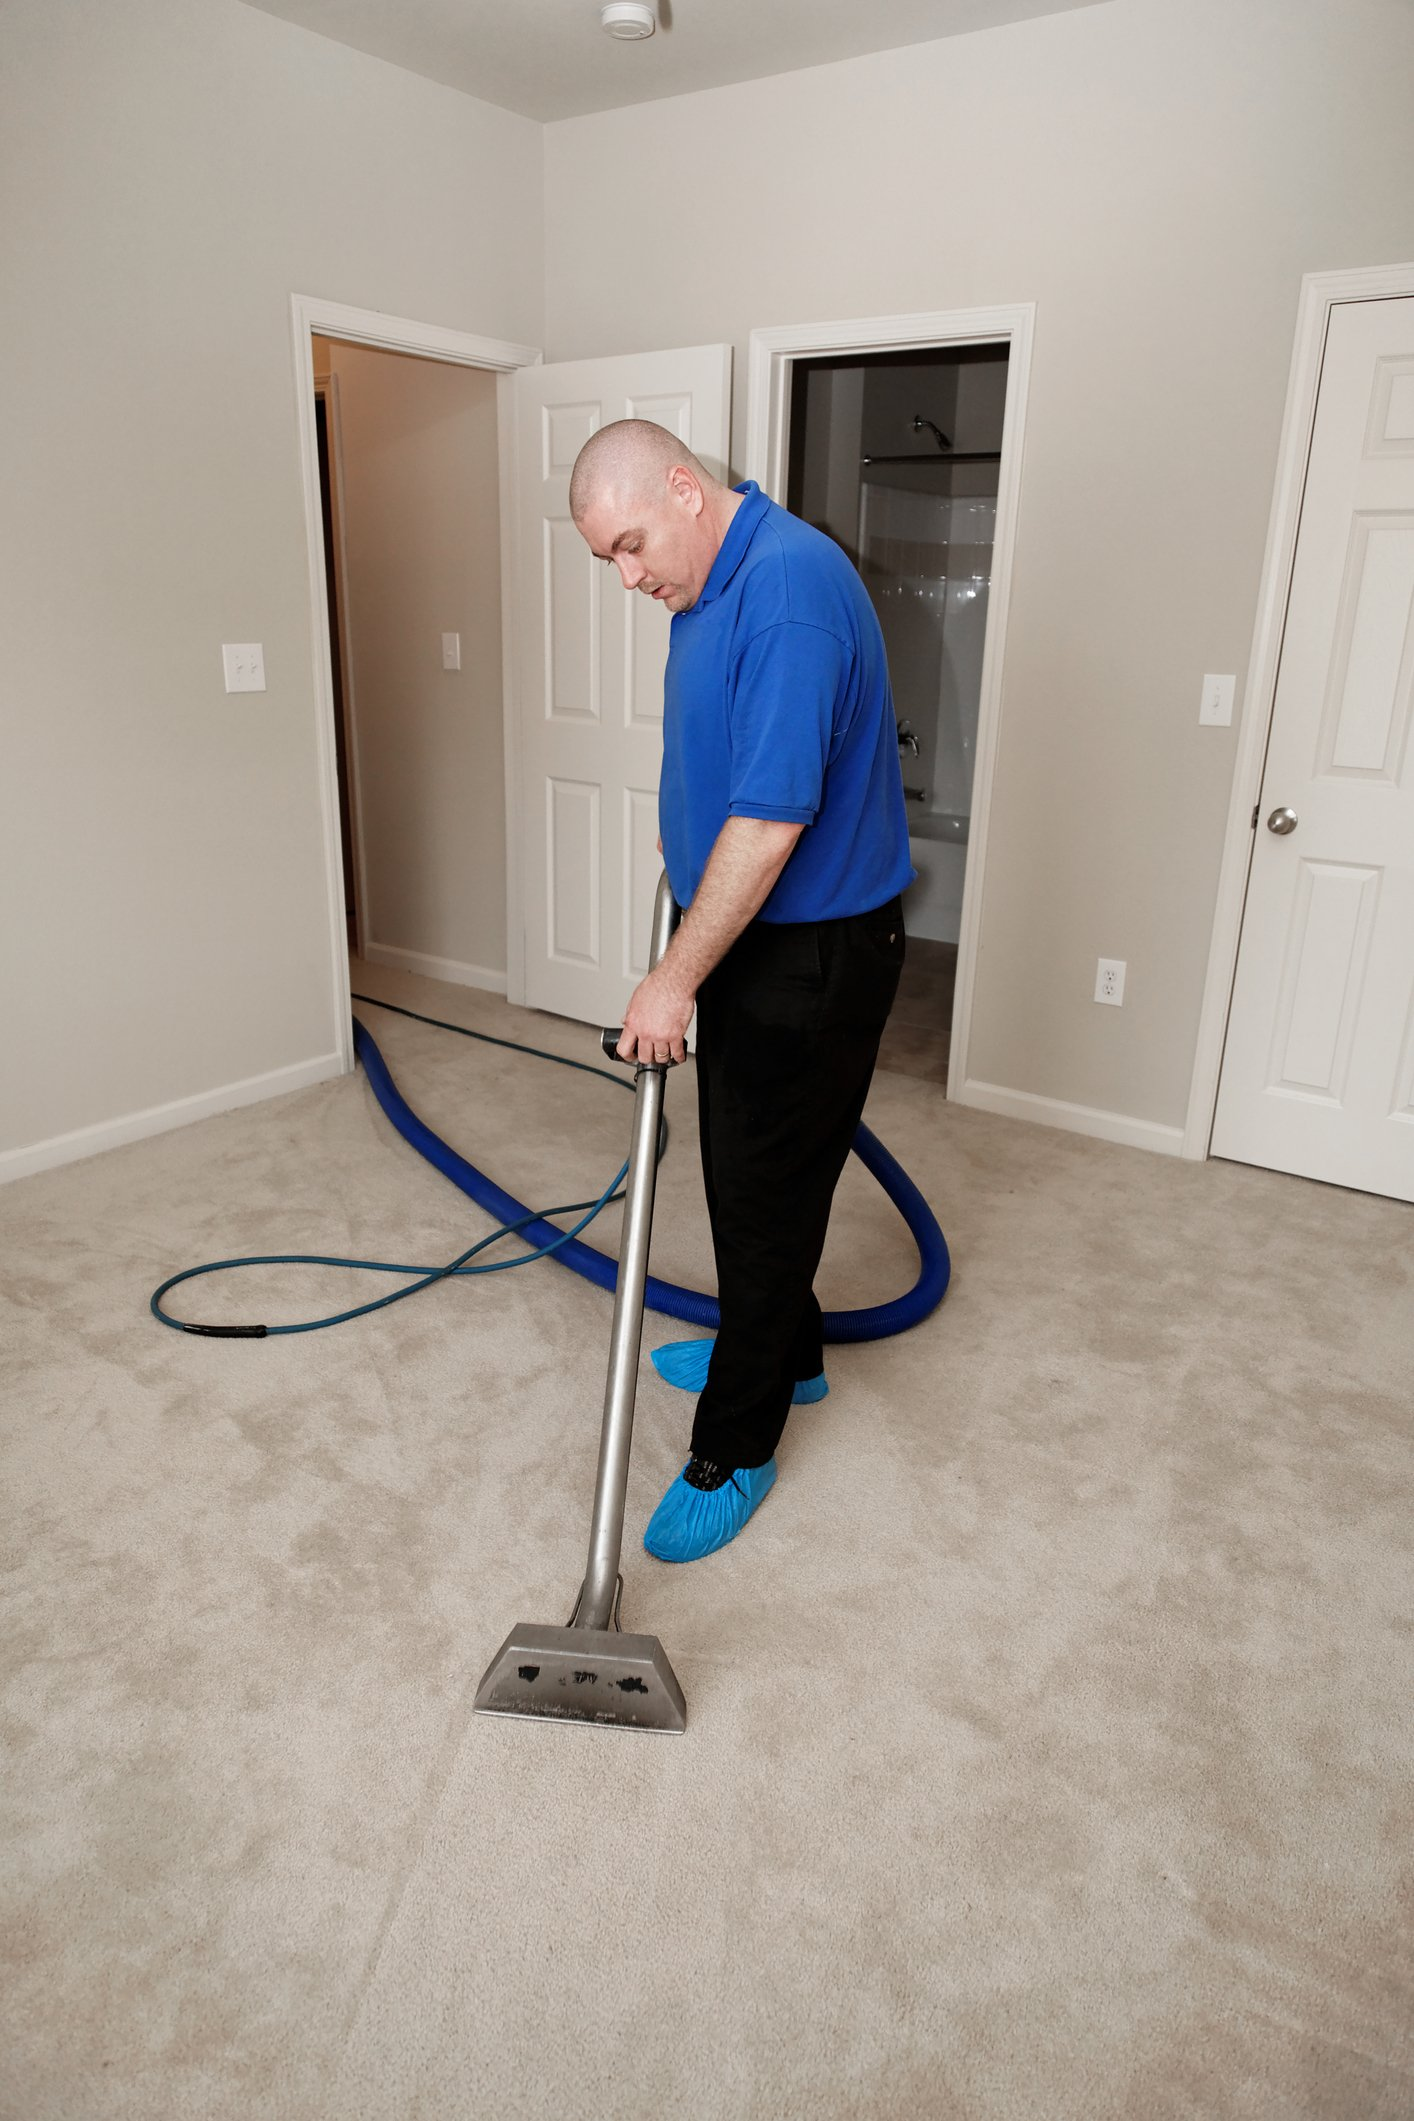 Gray carpet with extended arm vacuum on it